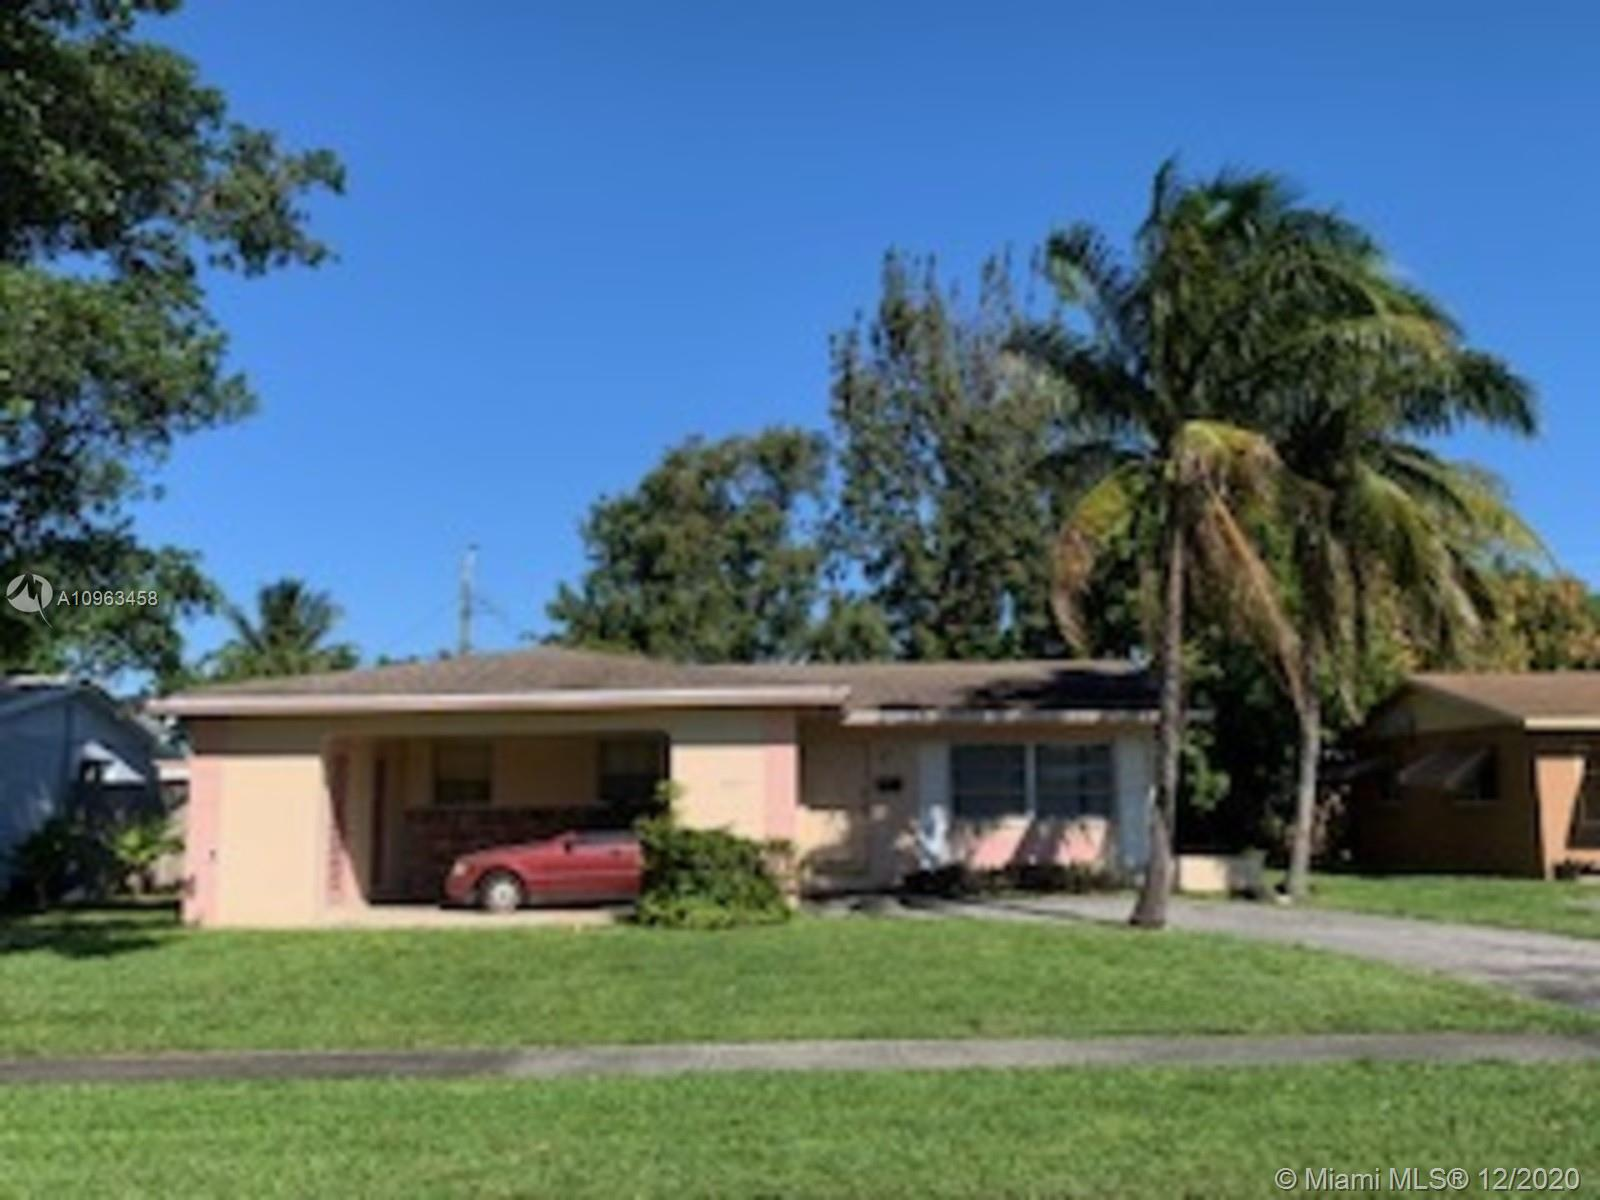 SPACIOUS SINGLE FAMILY HOME IN THE HEART OF LAUDERDALE LAKES. FEATURES THREE BEDROOMS AND TWO BATHROOMS WITH CAR PORT. SPACIOUS LIVING ROOM, EATIN KITCHEN, LARGE SCREENED REAR PATIO WITH LARGE FRONT YARD, BACK YARD.